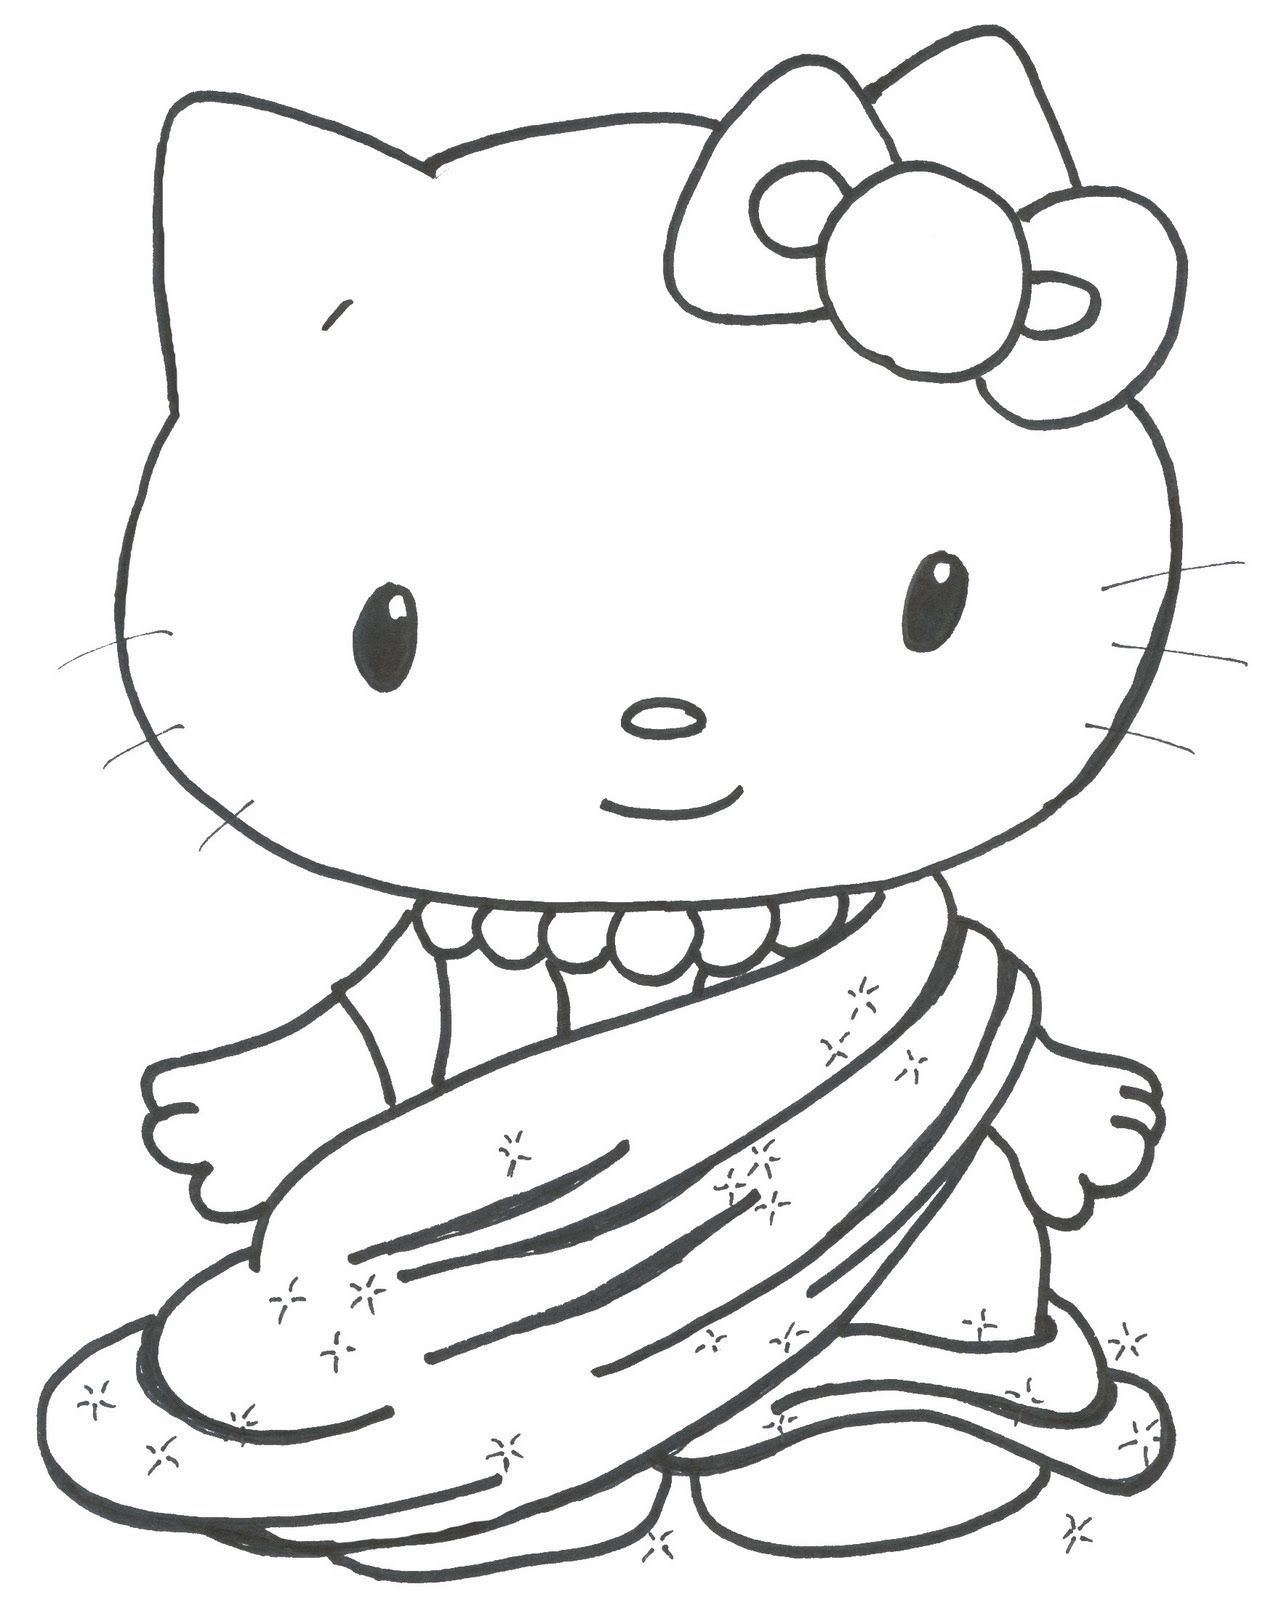 Newborn Kittens Coloring Pages - Coloring Home